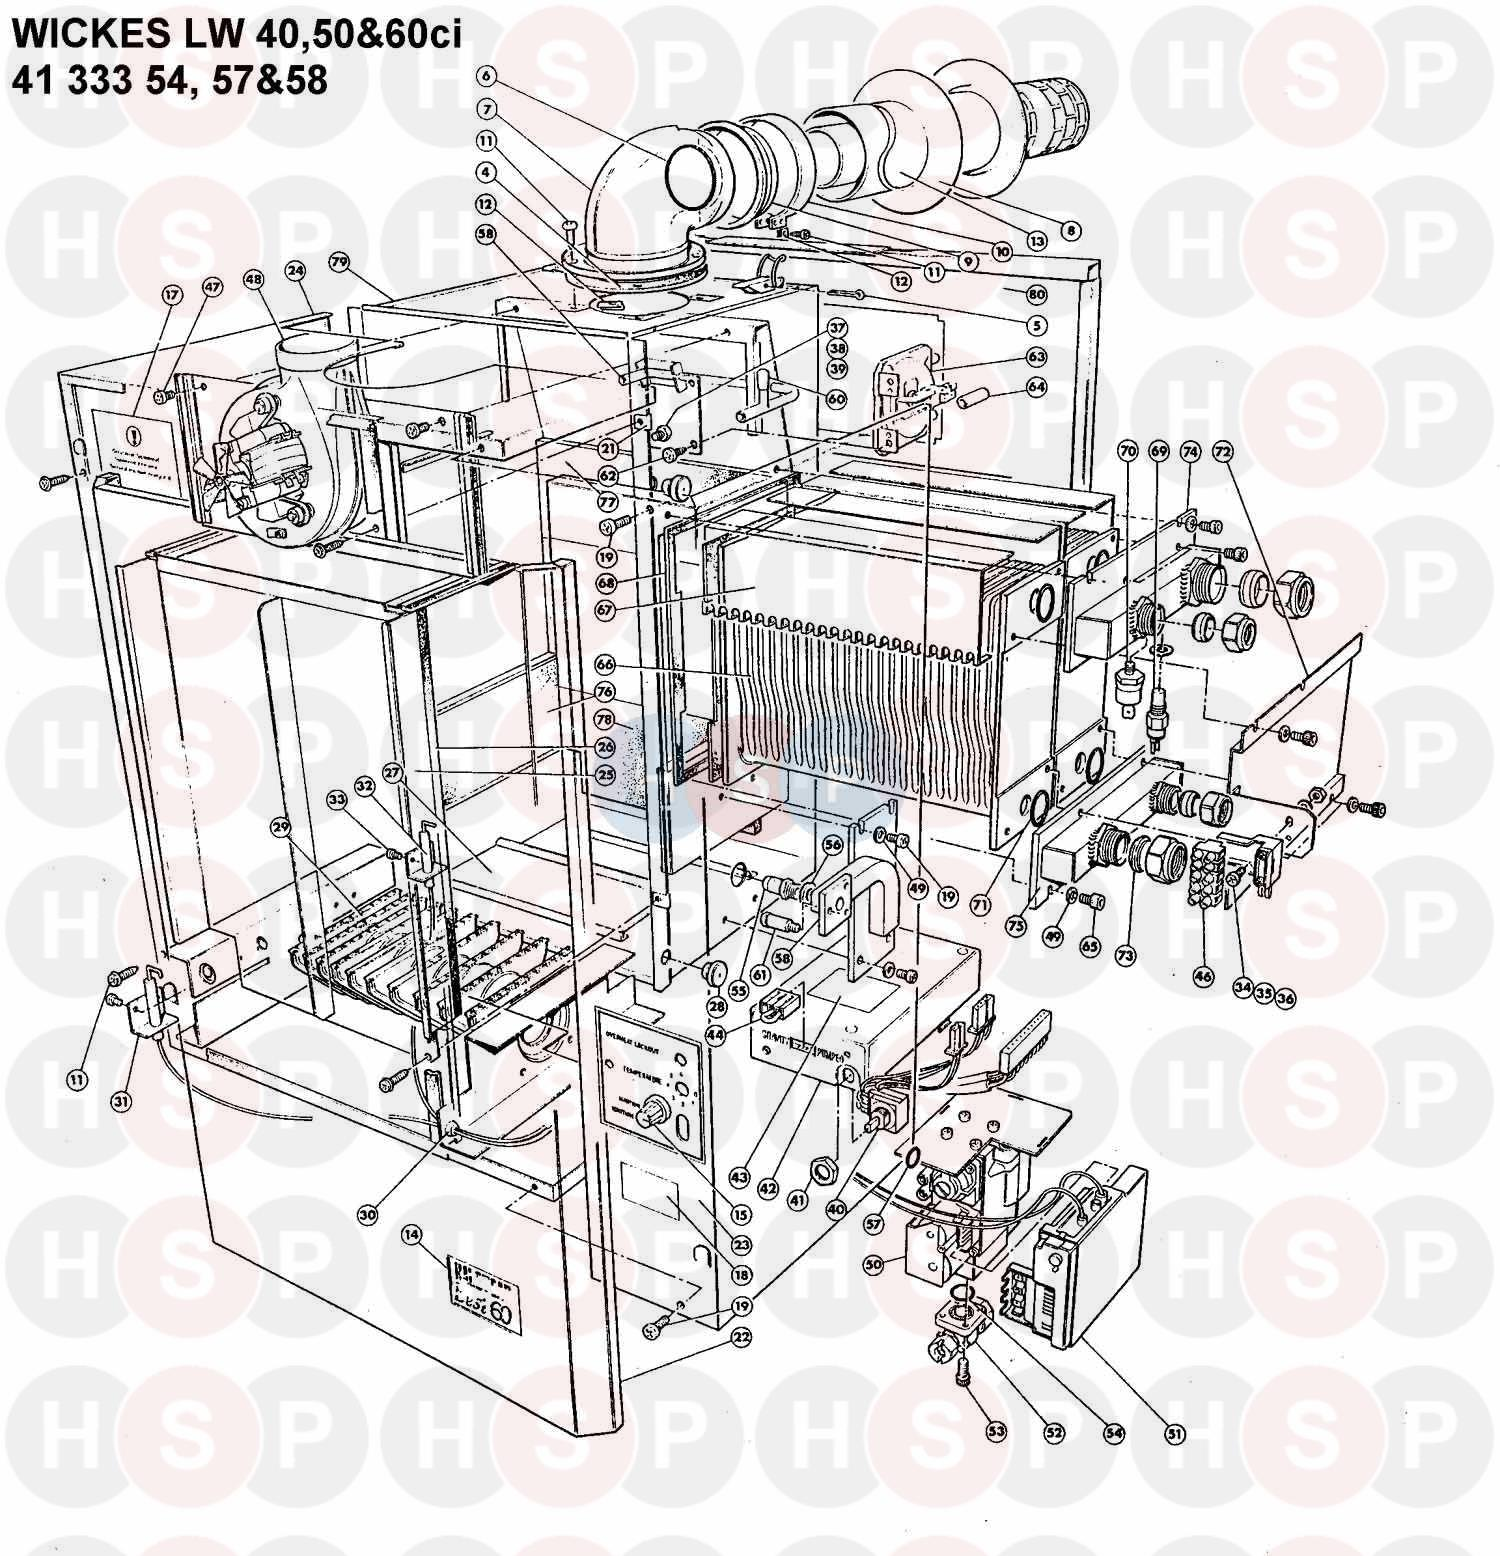 BOILER ASSEMBLY 1 diagram for Halstead WICKES LW 50CI